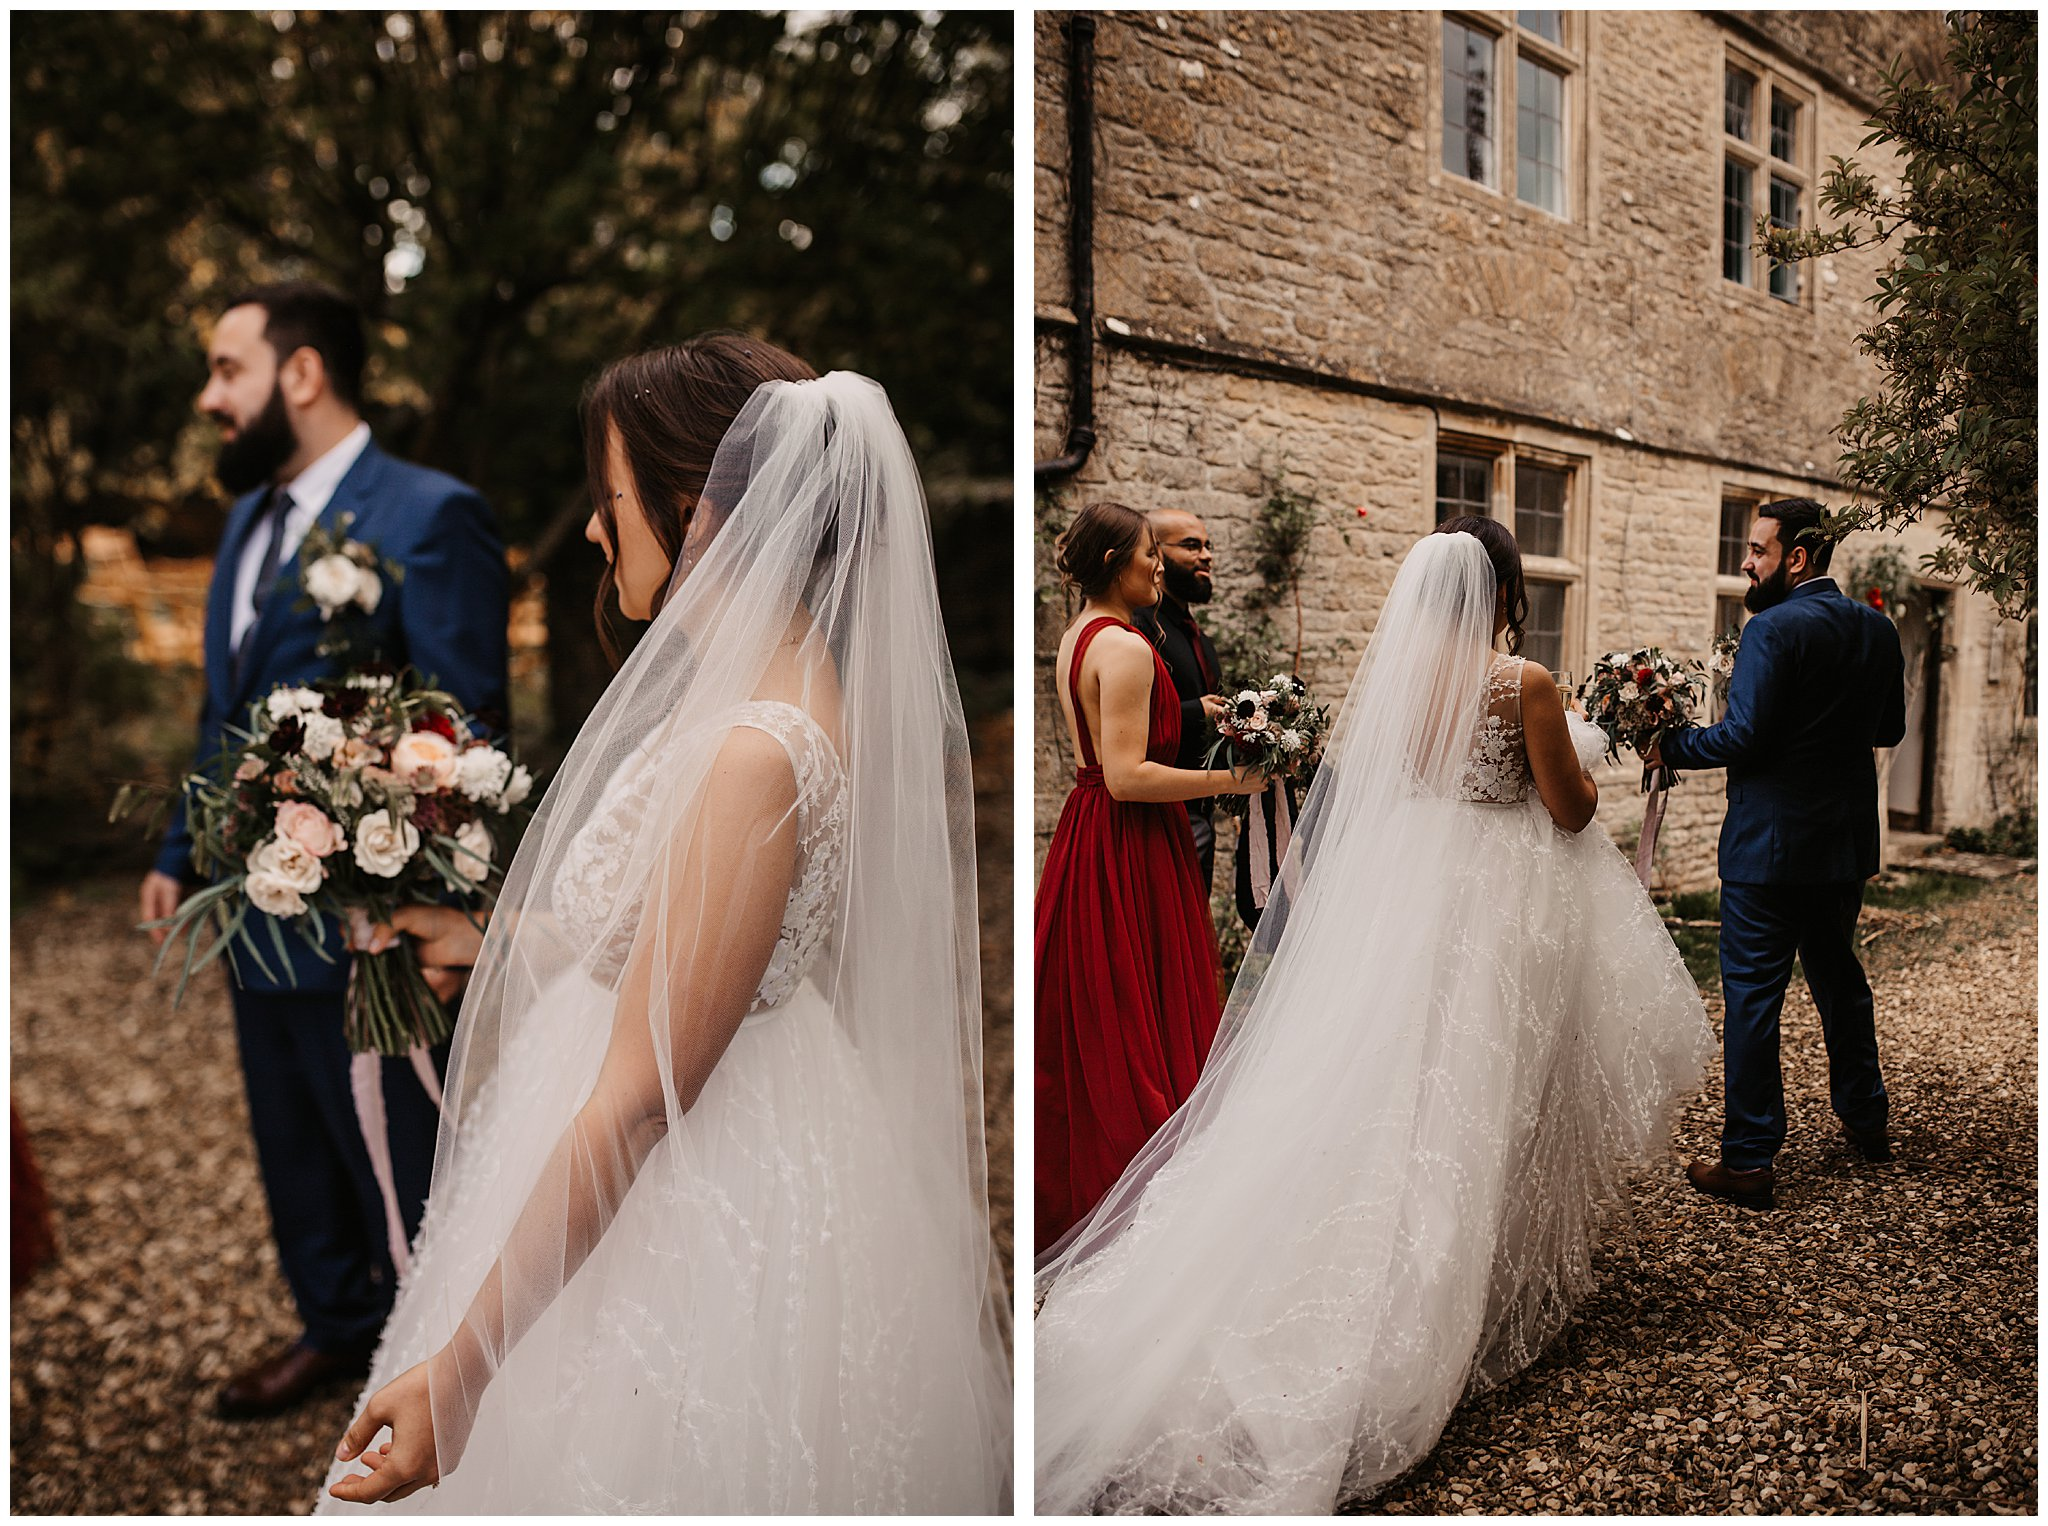 Max & Ksenia Autumnal Wiltshire Wedding-337.jpg